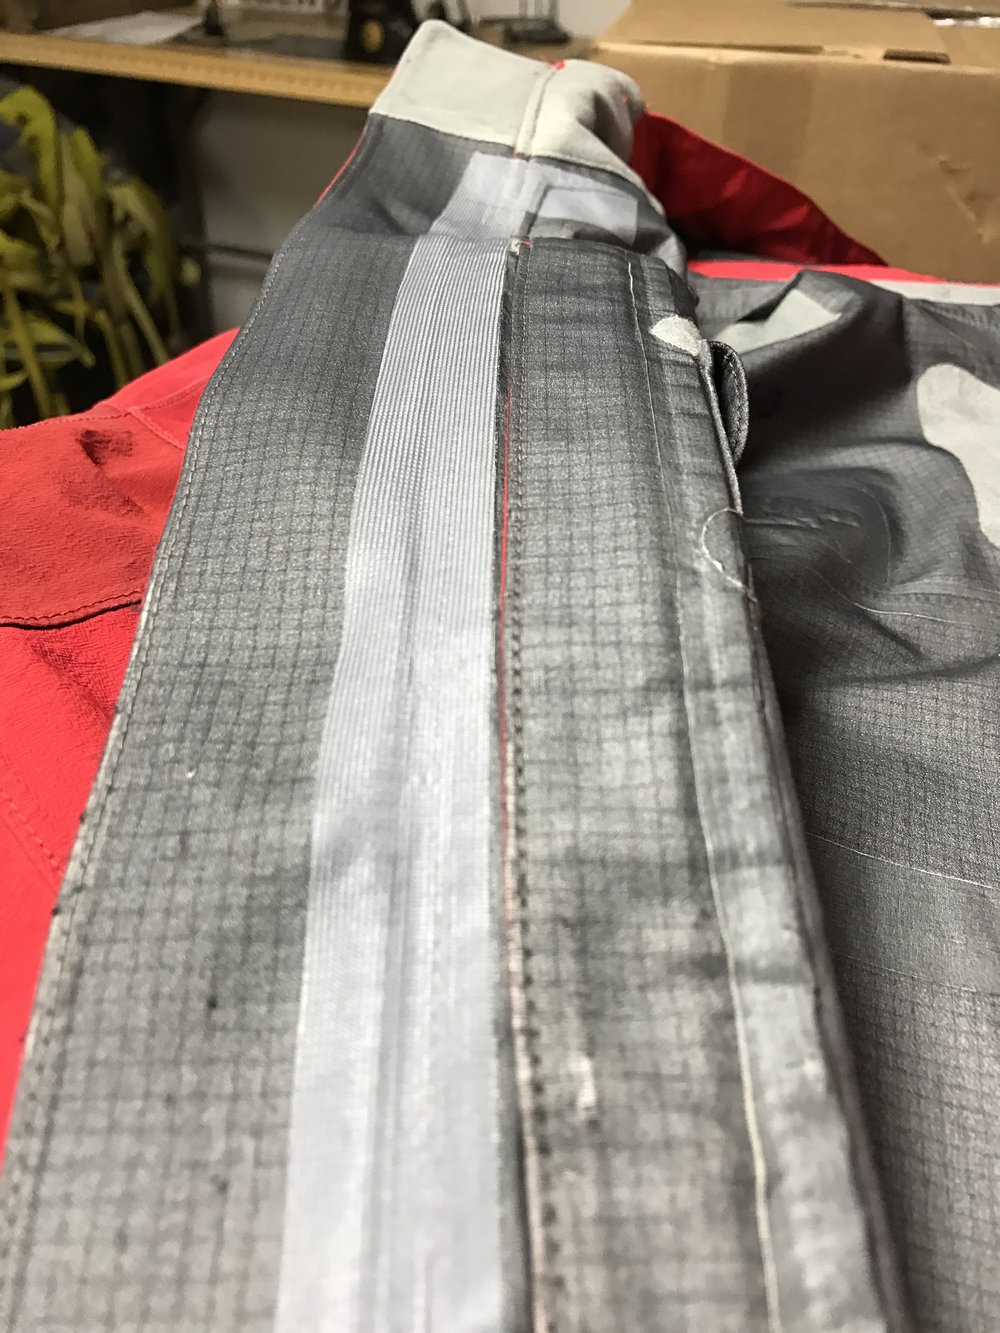 3 Layer seam tape